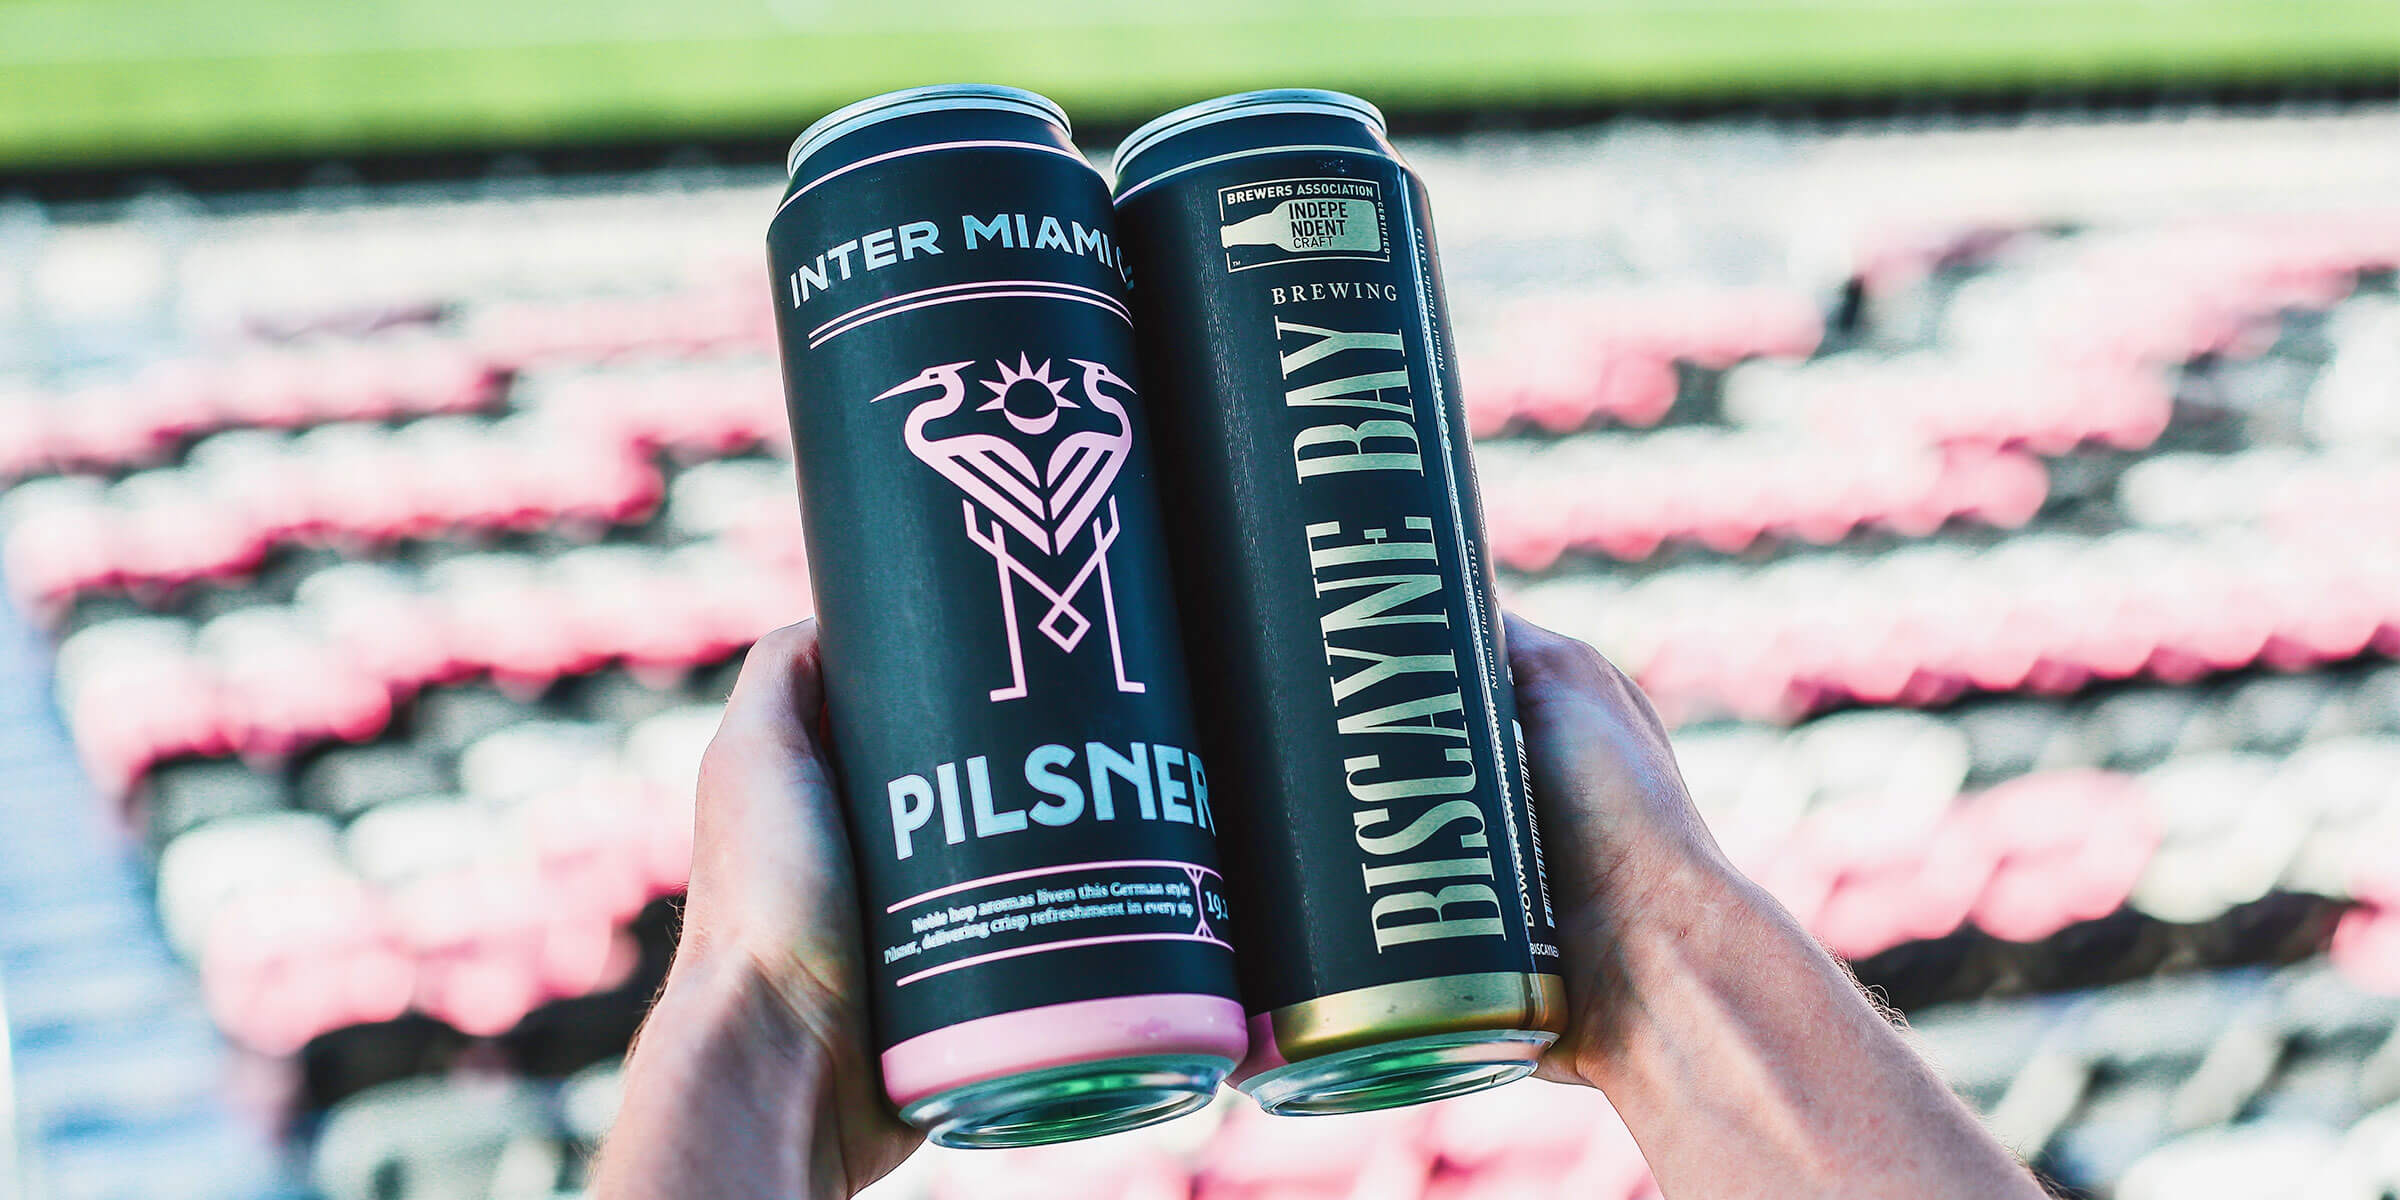 Inter Miami CF has partnered with Biscayne Bay Brewing Company as the Official Craft Beer and to create a specialty pilsner for the Club's inaugural season.